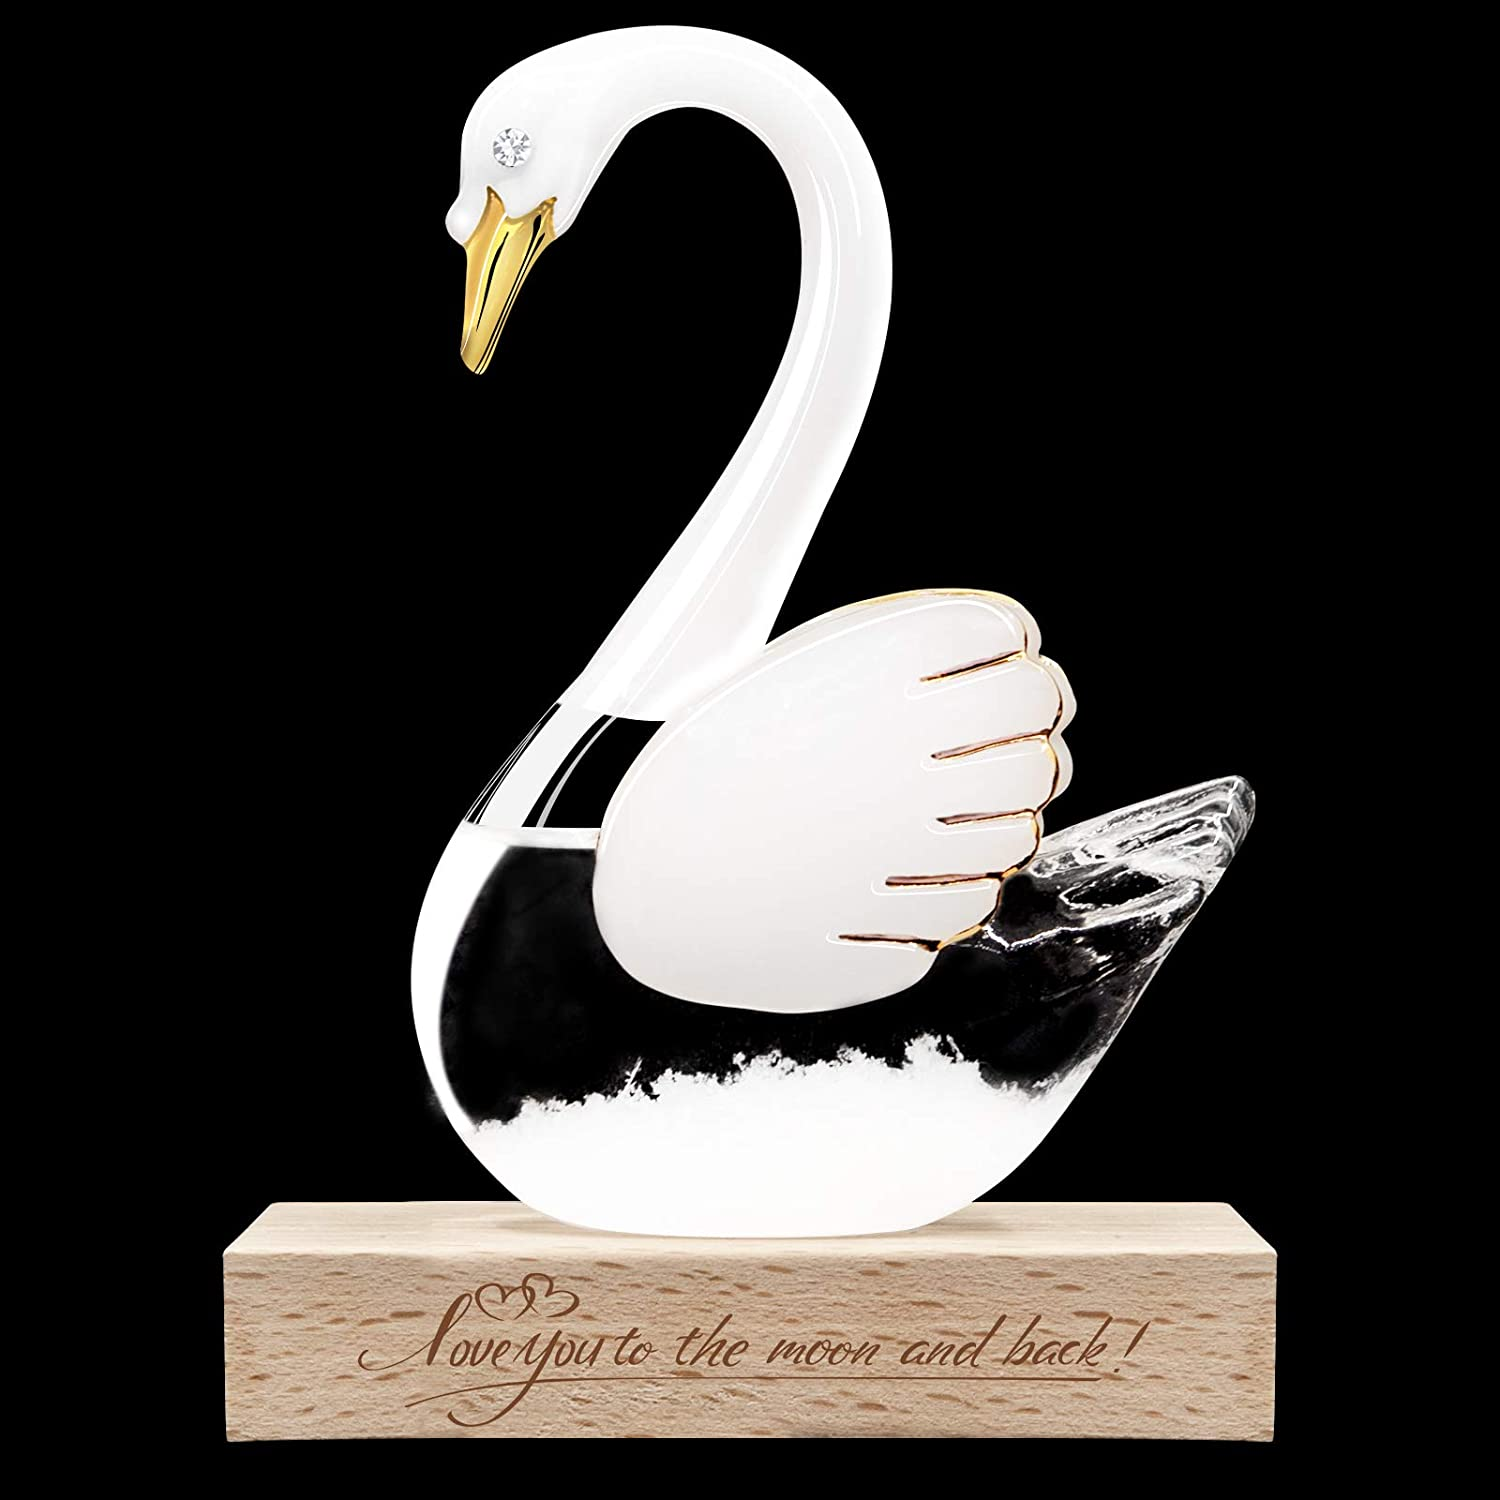 Storm Glass Weather Predictor Barometer - Birthday Anniversary Christmas Gift White Swan Lake Shaped Forecaster Weather Sation for Kids Wife Girlfriend Home Office Decor